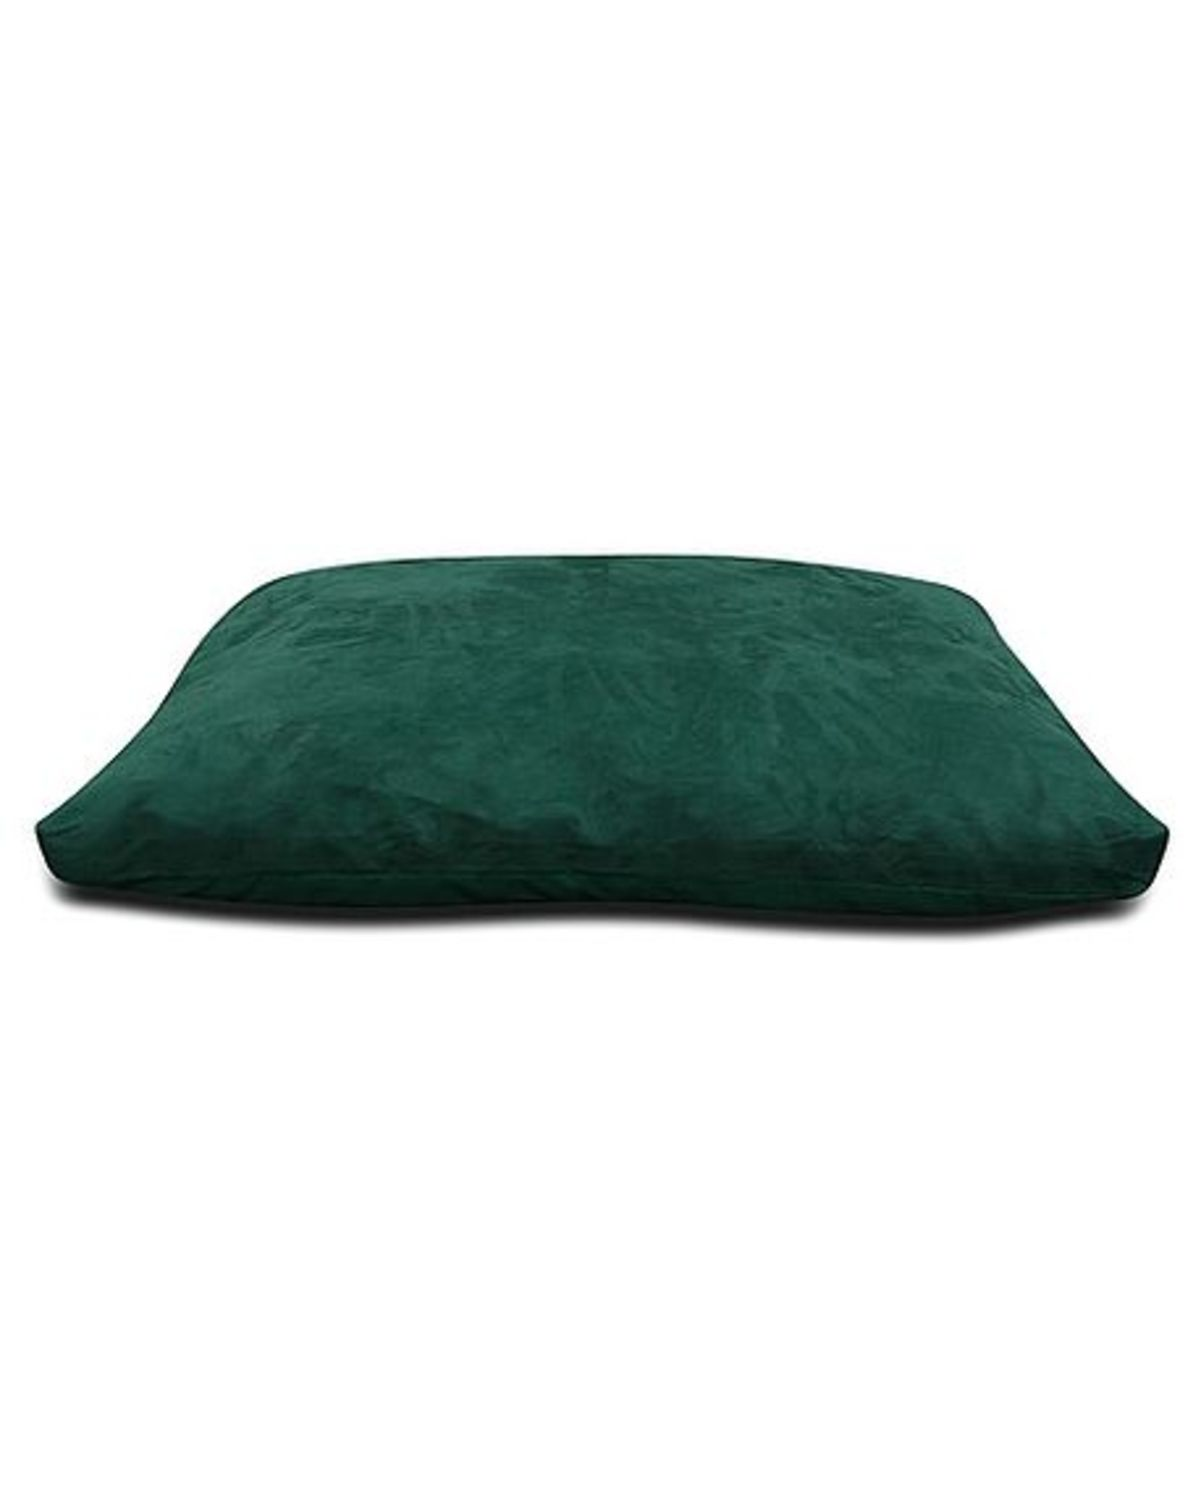 Dust Mite Cover For Dog Bed